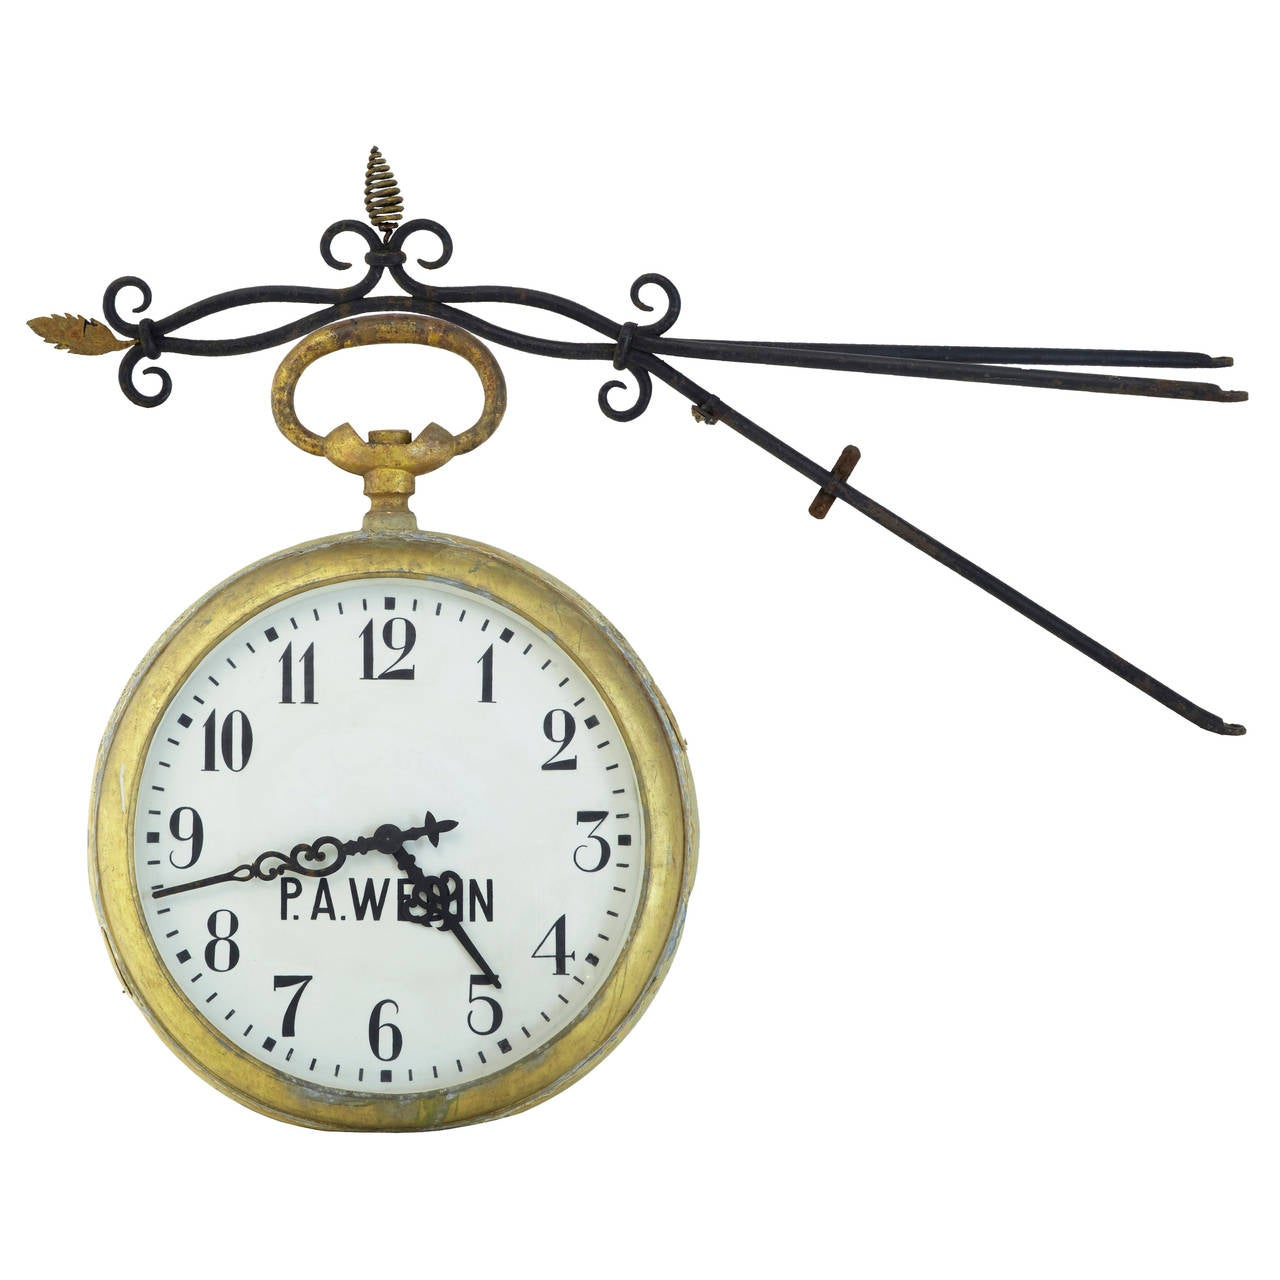 Unique early 20th century tole oversized street clock for Unusual clocks for sale